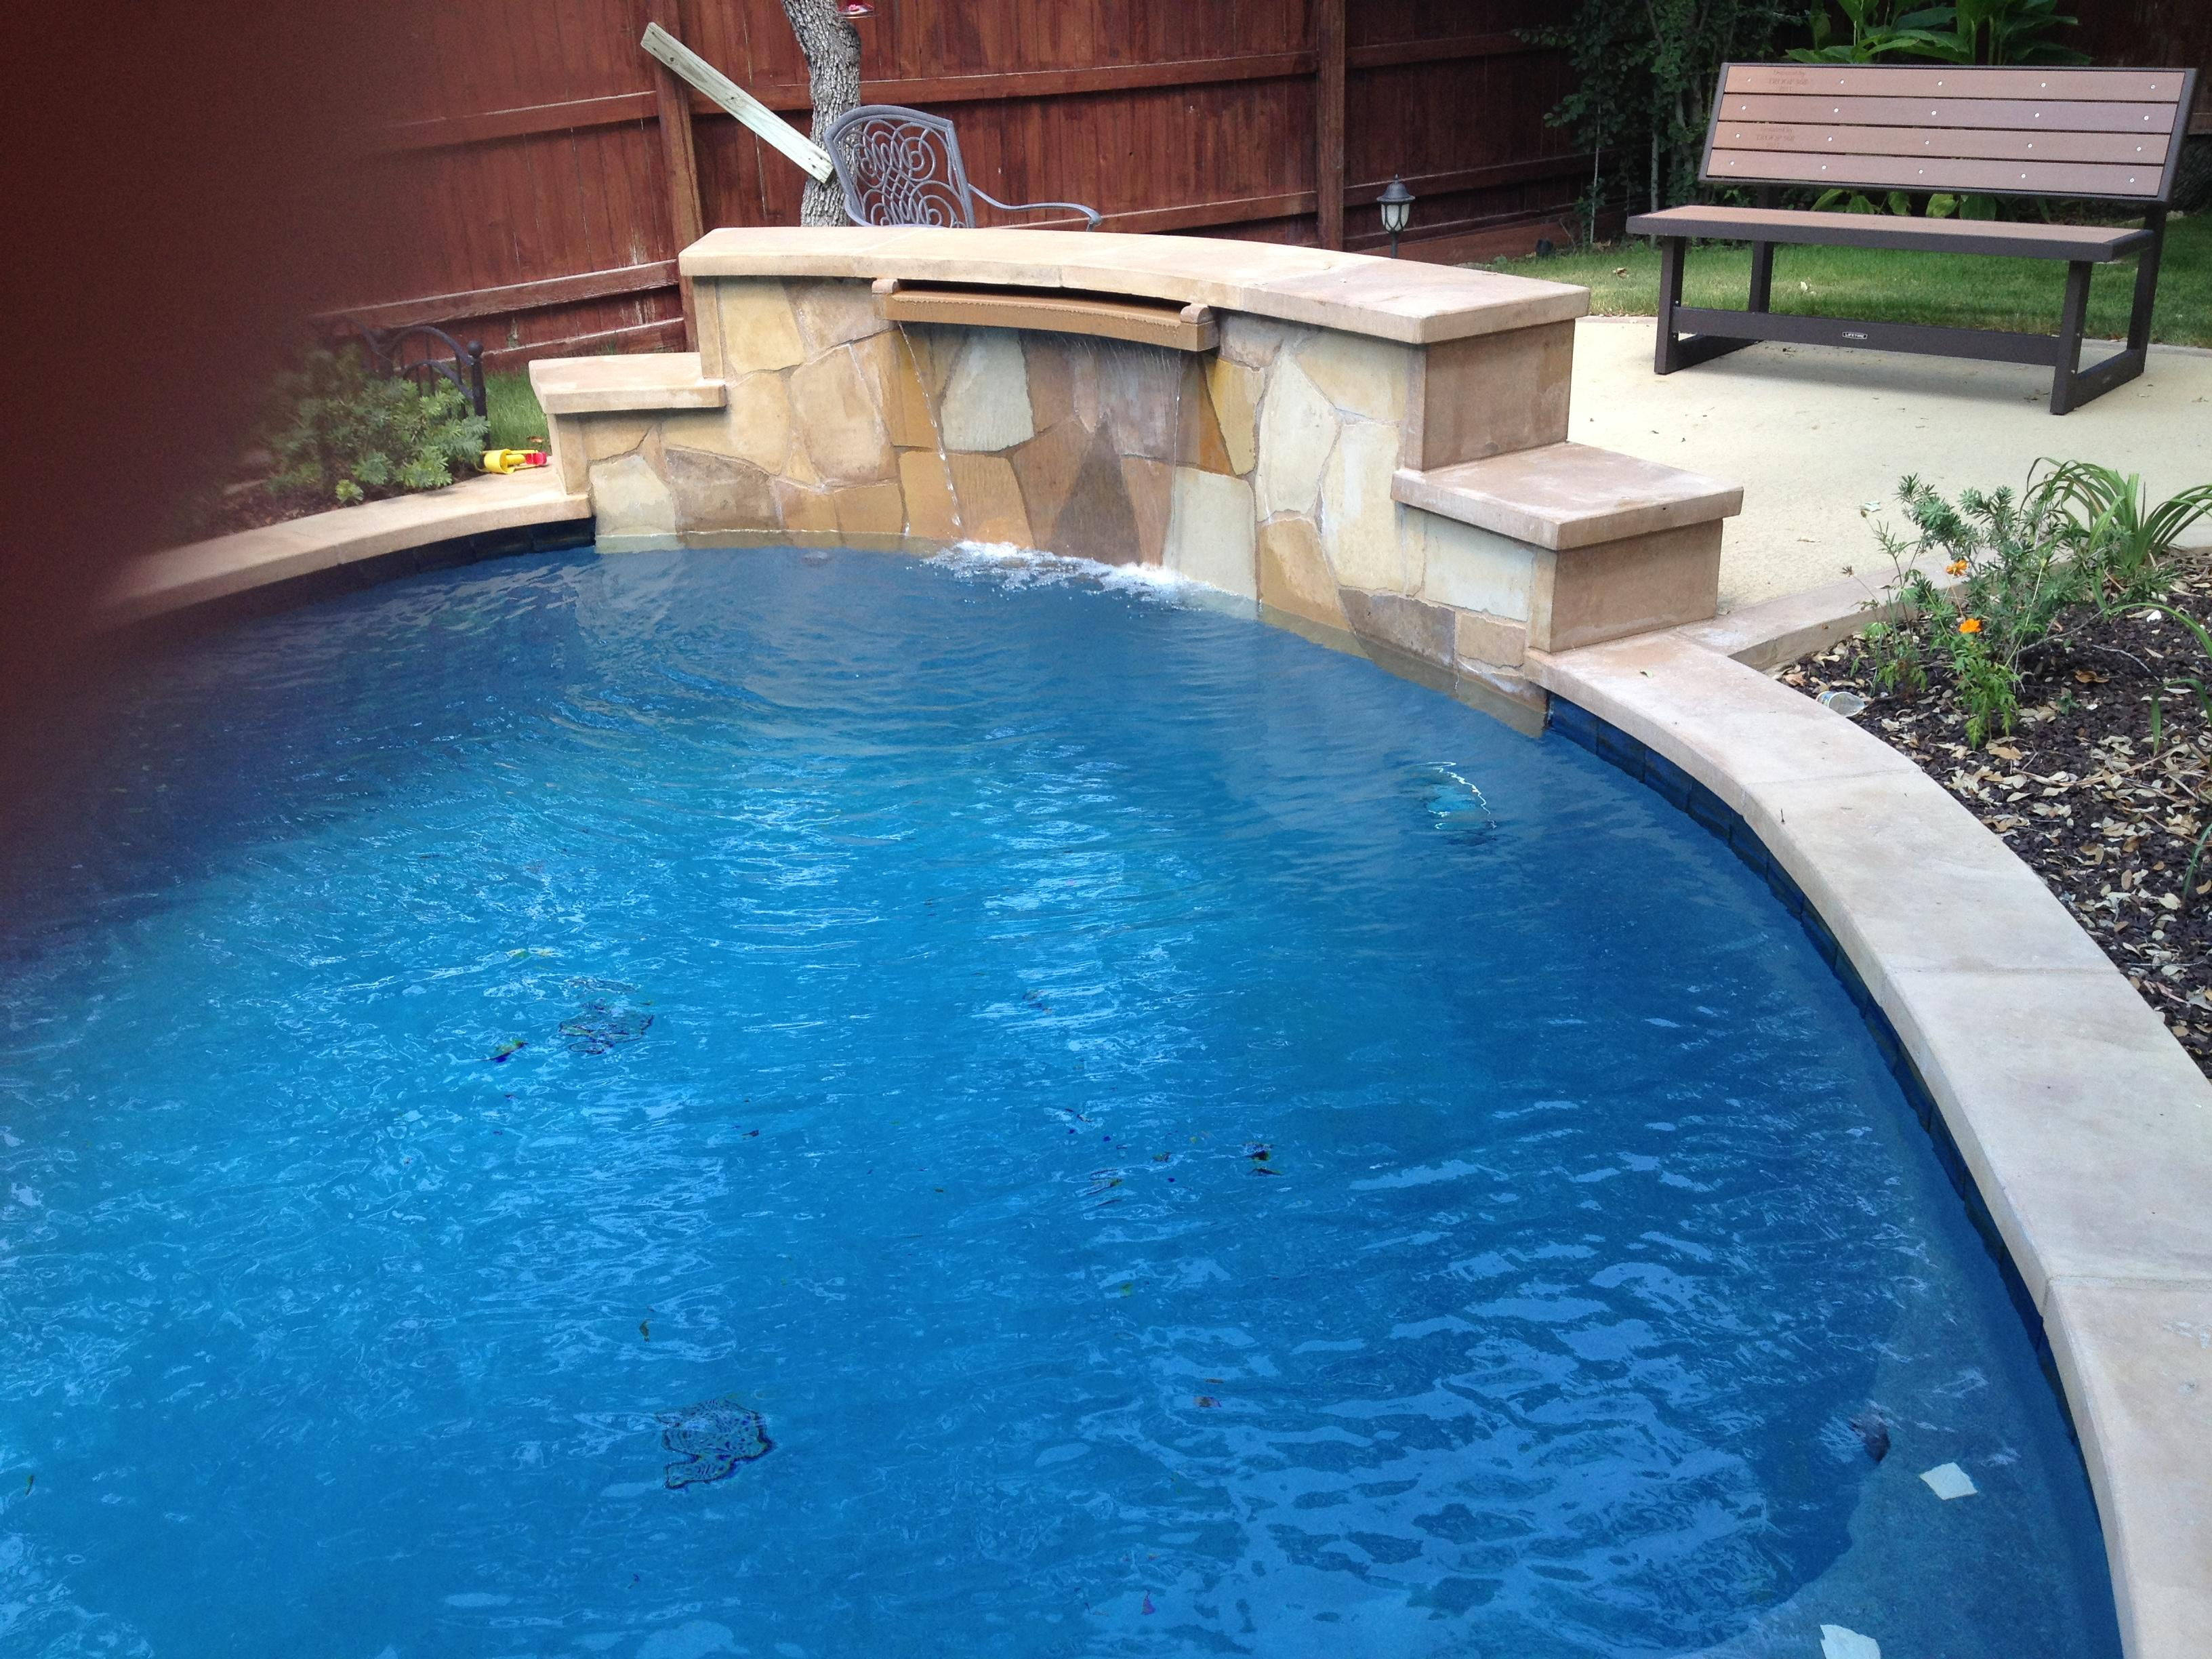 raised walls and spillway features new wave pools austin